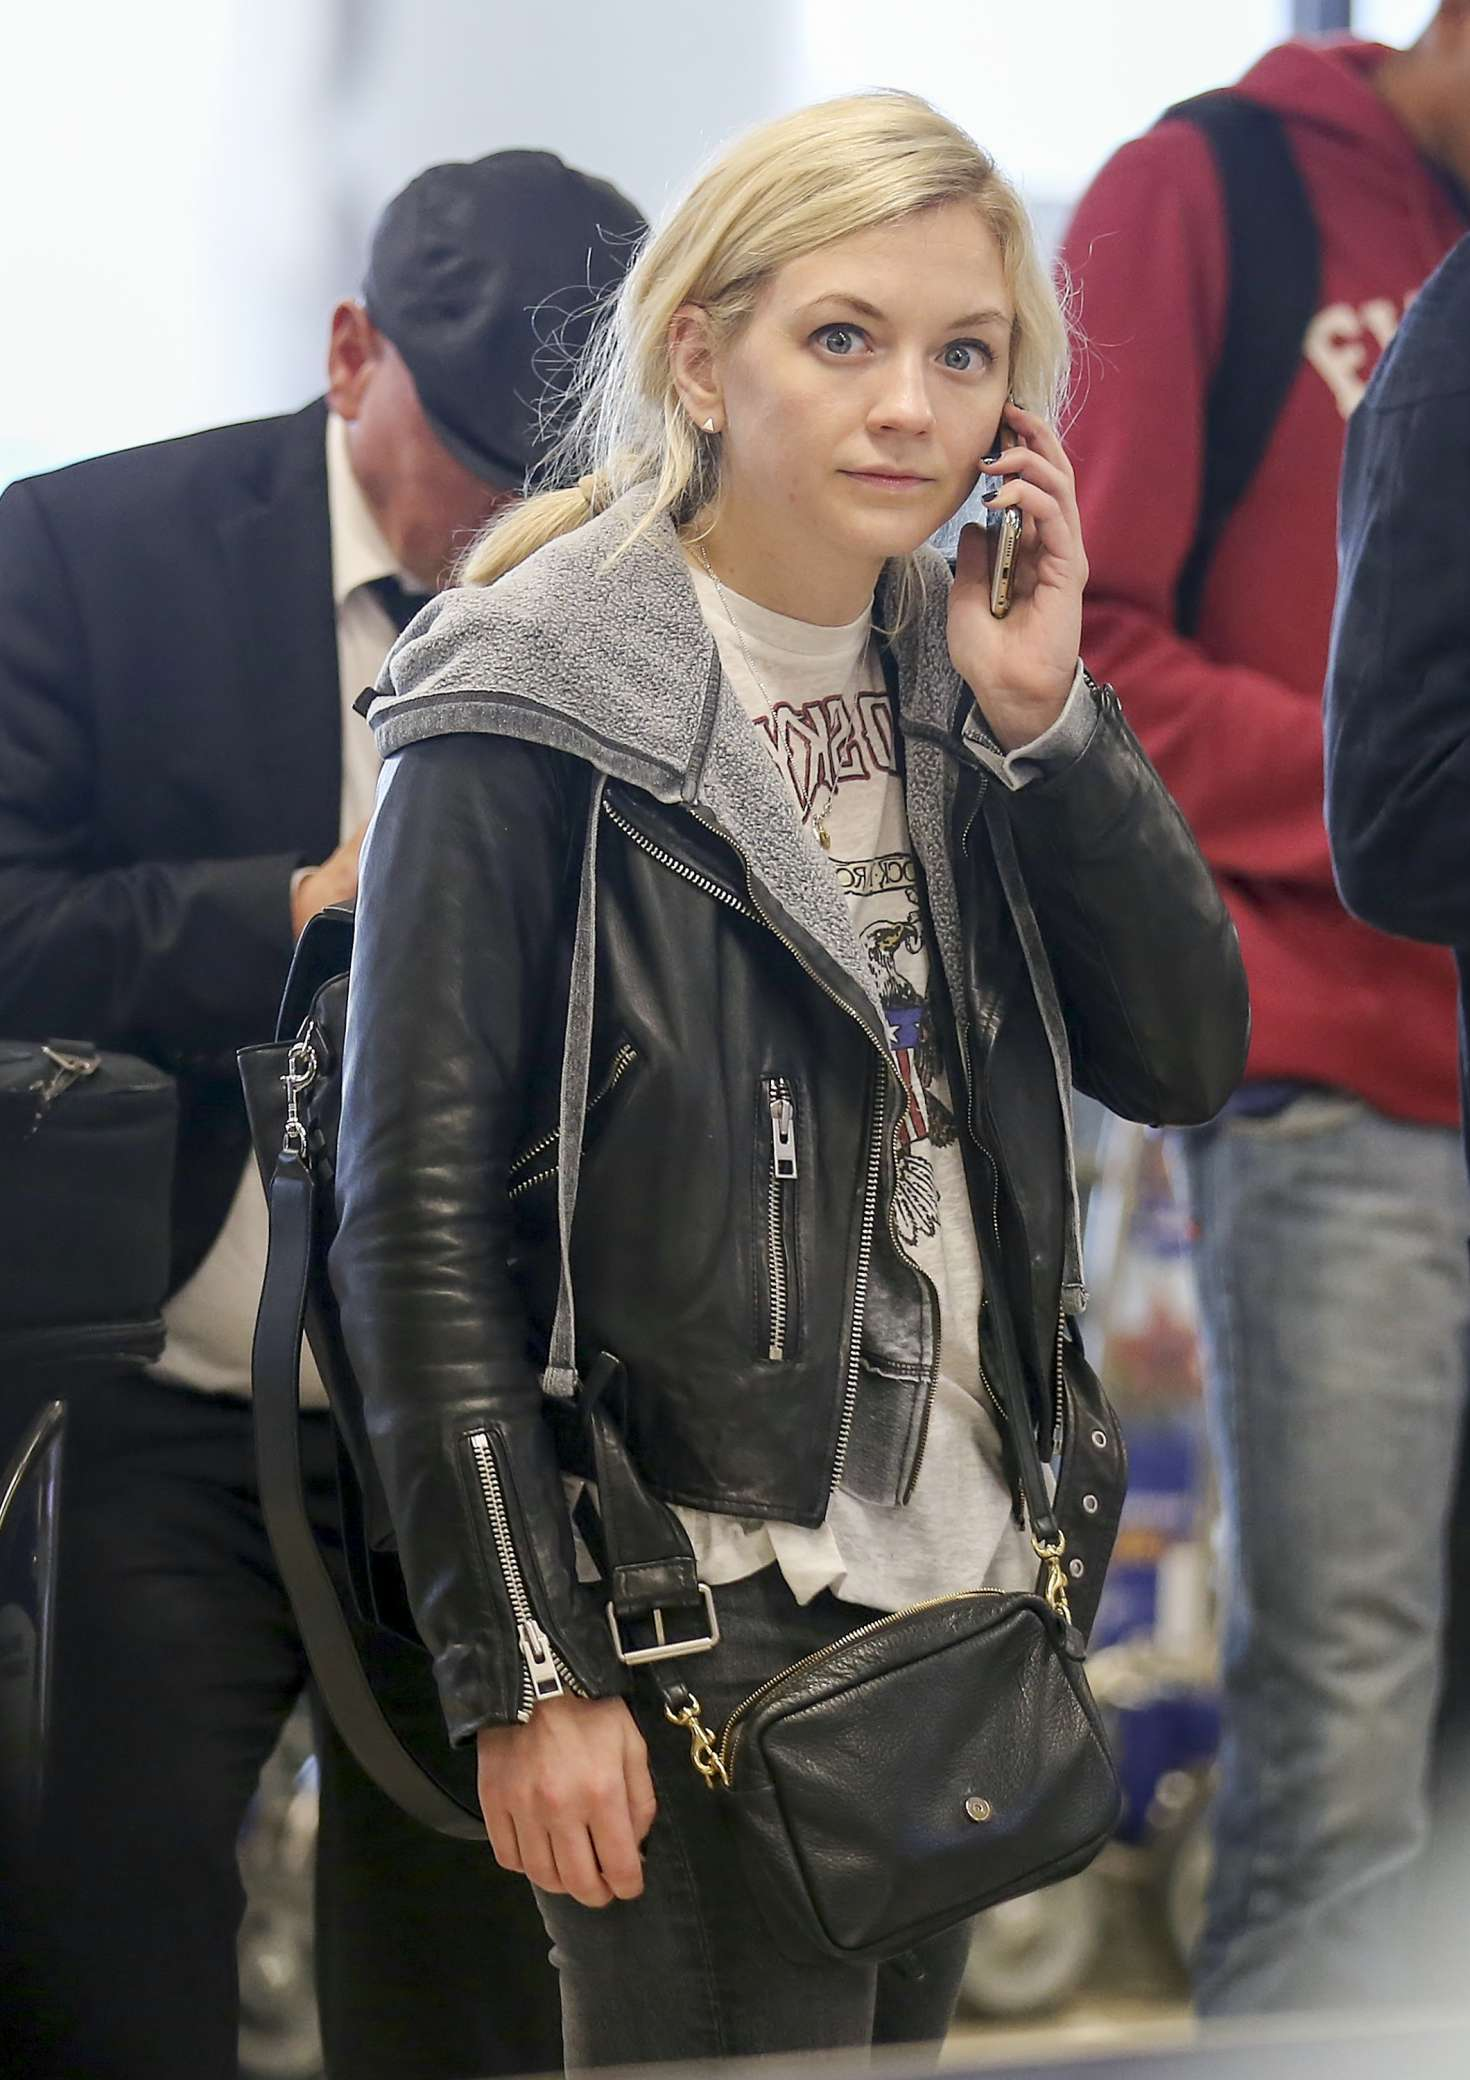 Emily Kinney 2017 : Emily Kinney at LAX Airport in LA -04